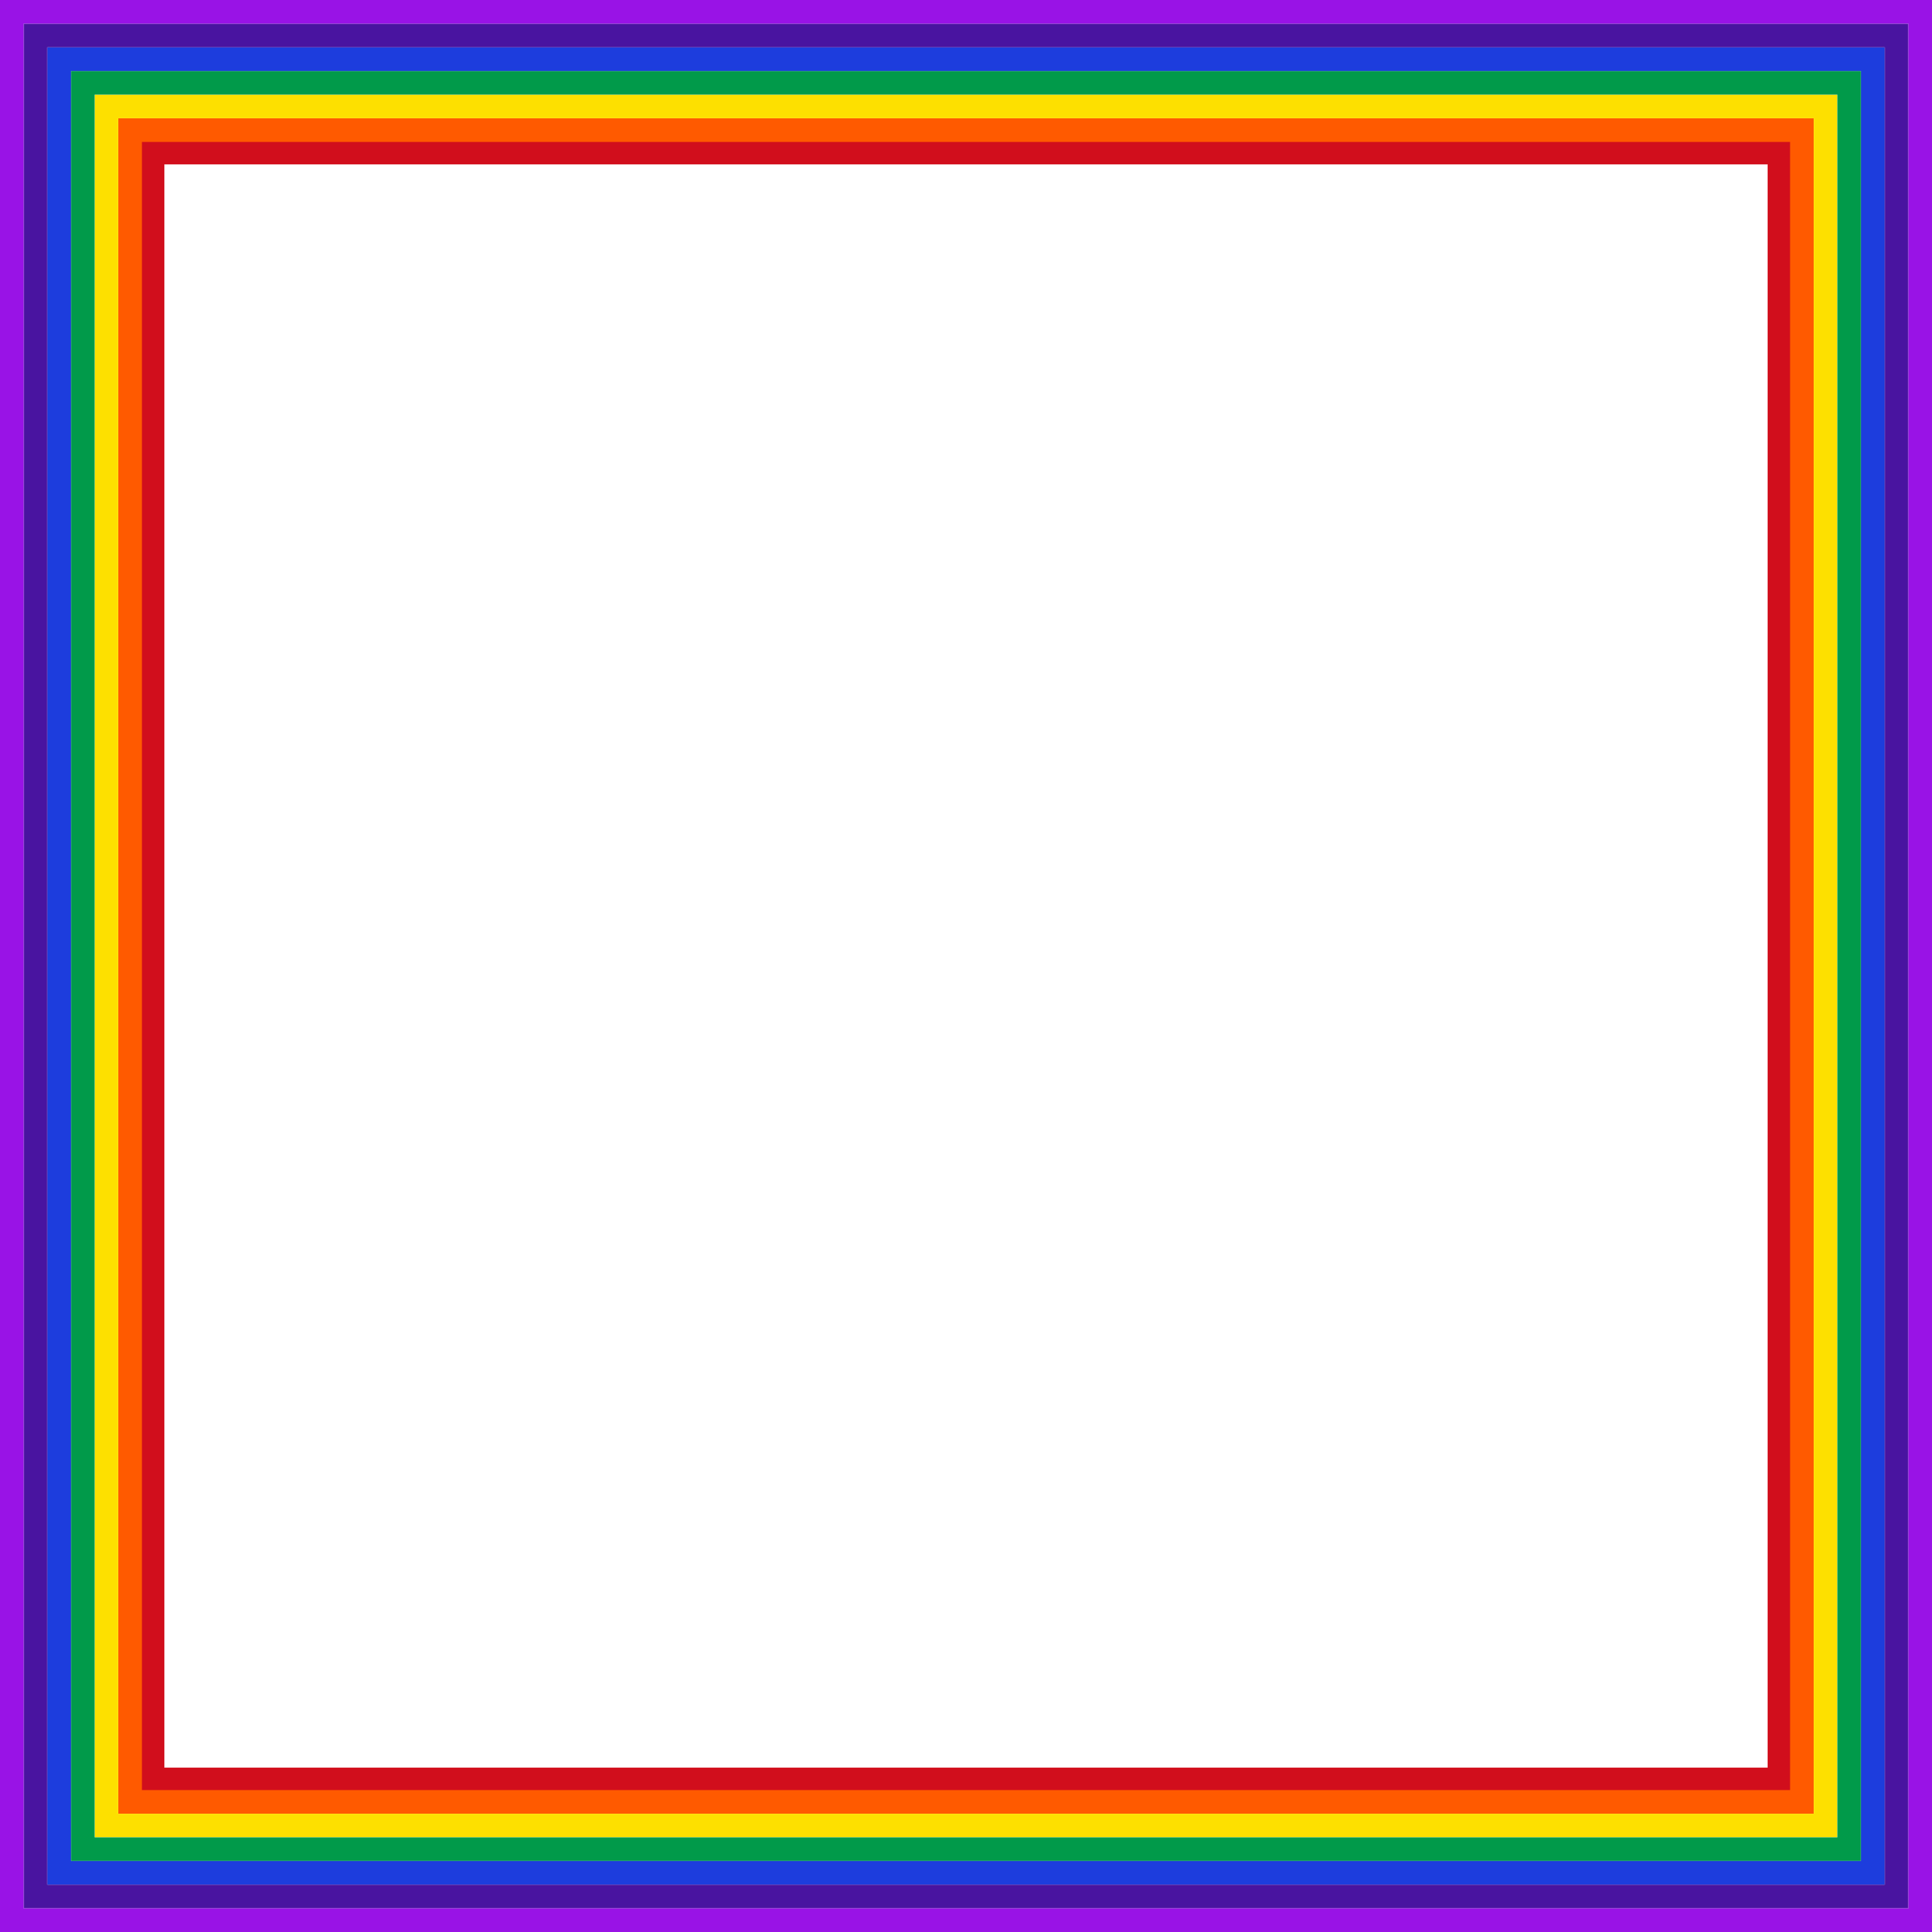 Clipart square big image. Rainbow frame png